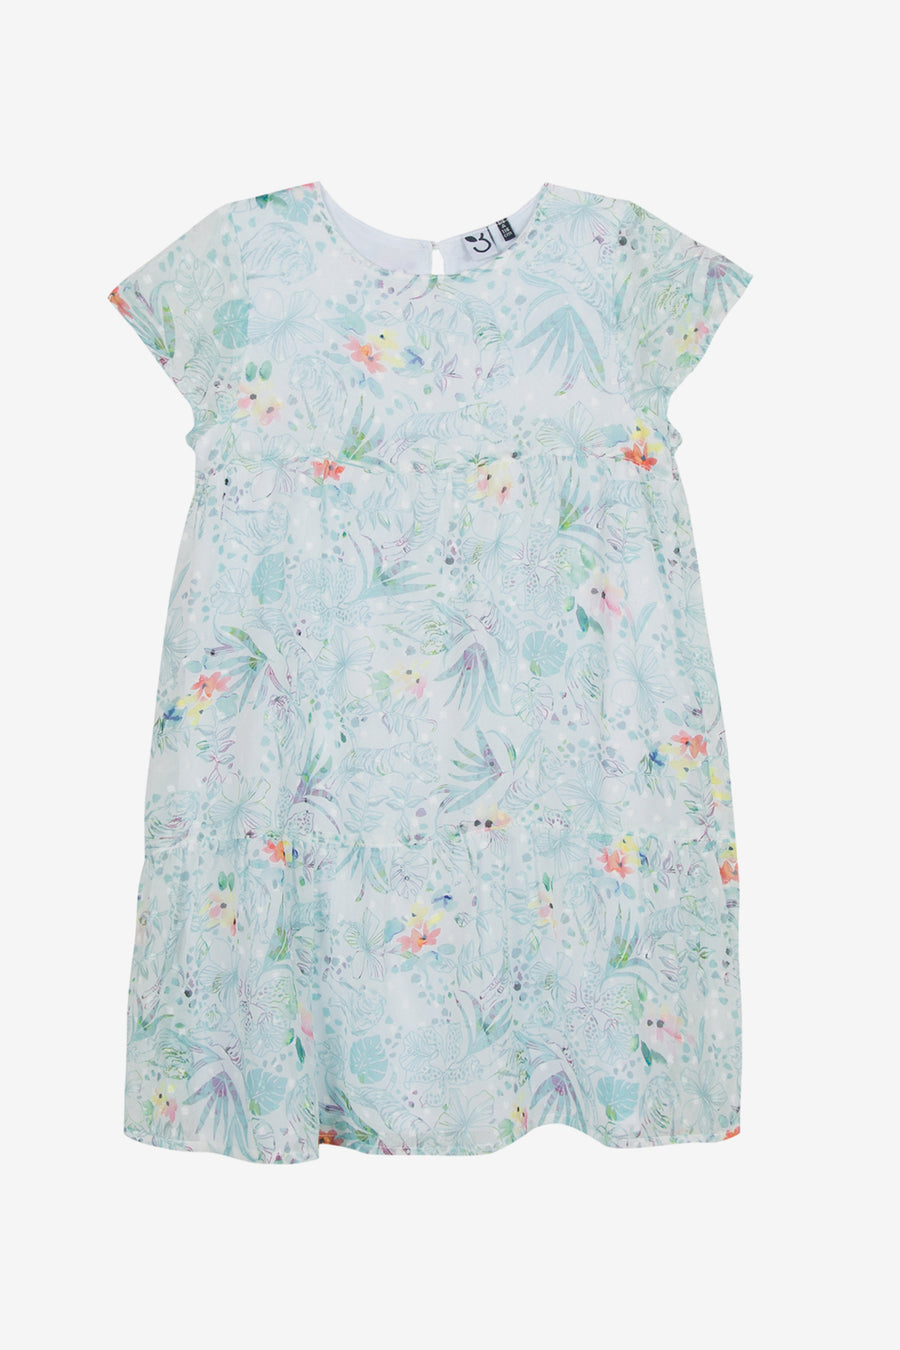 3pommes Breezy Floral Dress